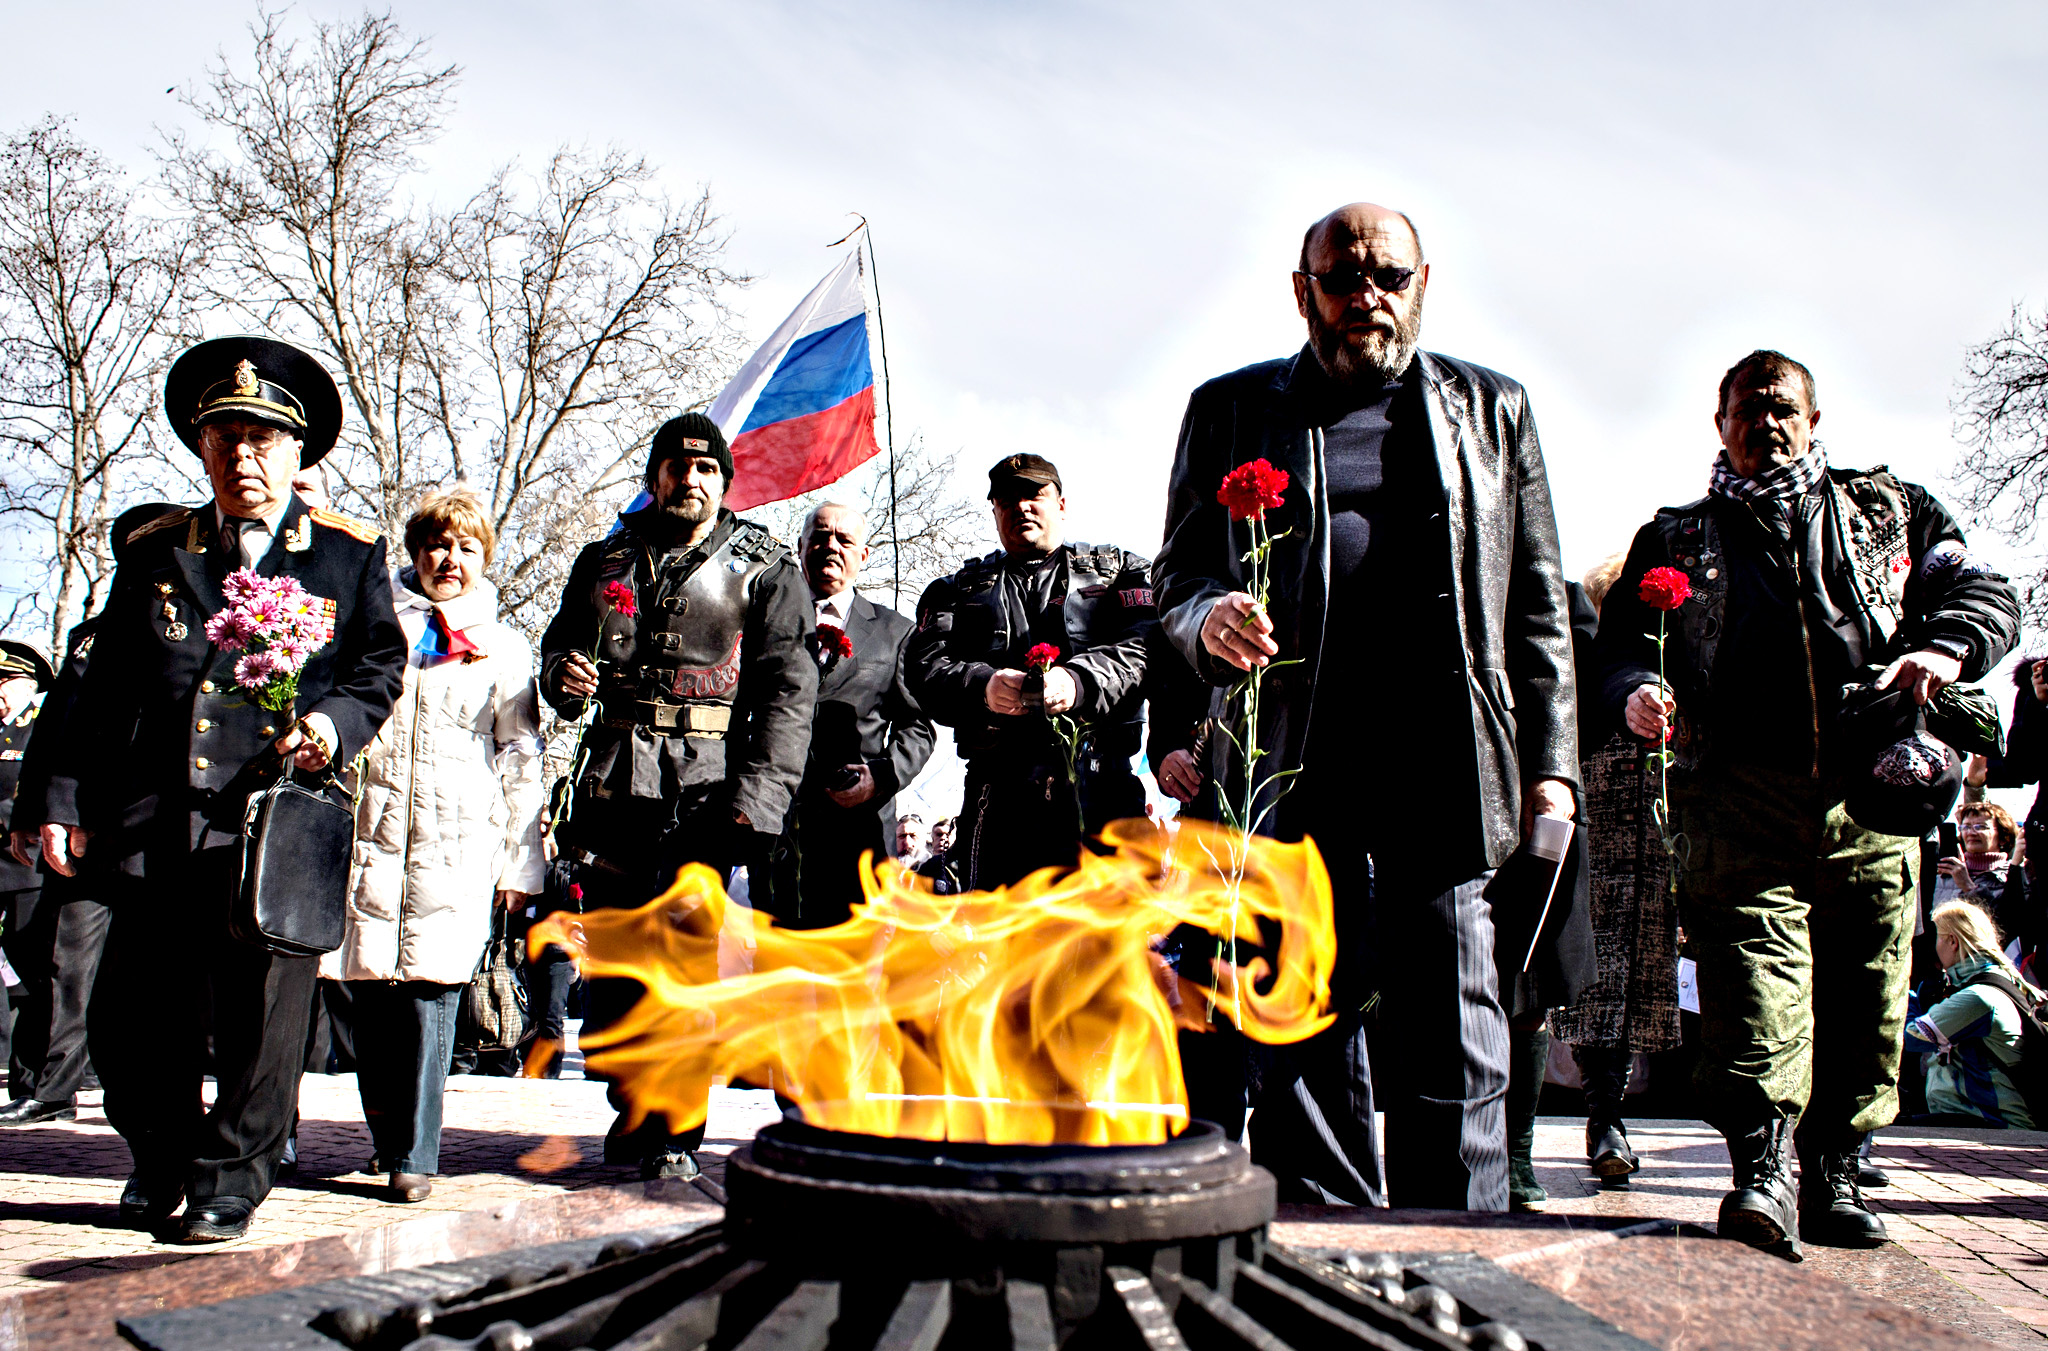 People bring flowers to the eternal flame on the memorial of the heroic defense of Sevastopol (1941-1942) as Crimeans celebrate the first anniversary of the referendum on Monday in Sevastopol, Crimea . Today marks the first anniversary of the referendum which resulted in the annexation of the territory by Russia